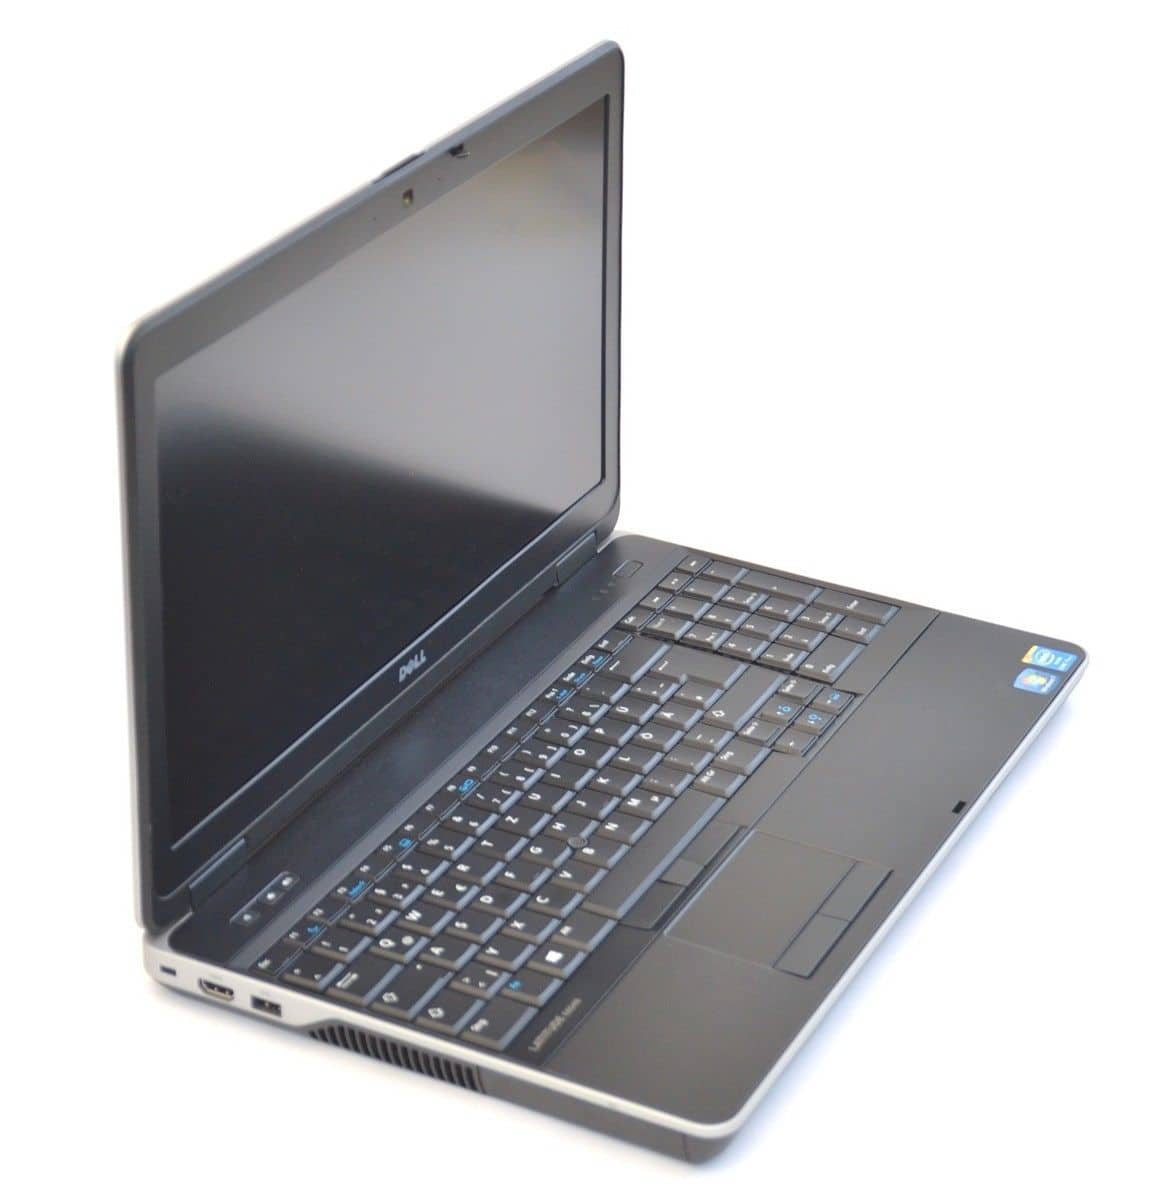 "Refurbished Dell Latitude E6540 15.6"" i7-4800MQ 3.70GHz 256GB MSATA 16GB RAM AMD HD 8790M 2GB + Free Shipping $489.99"